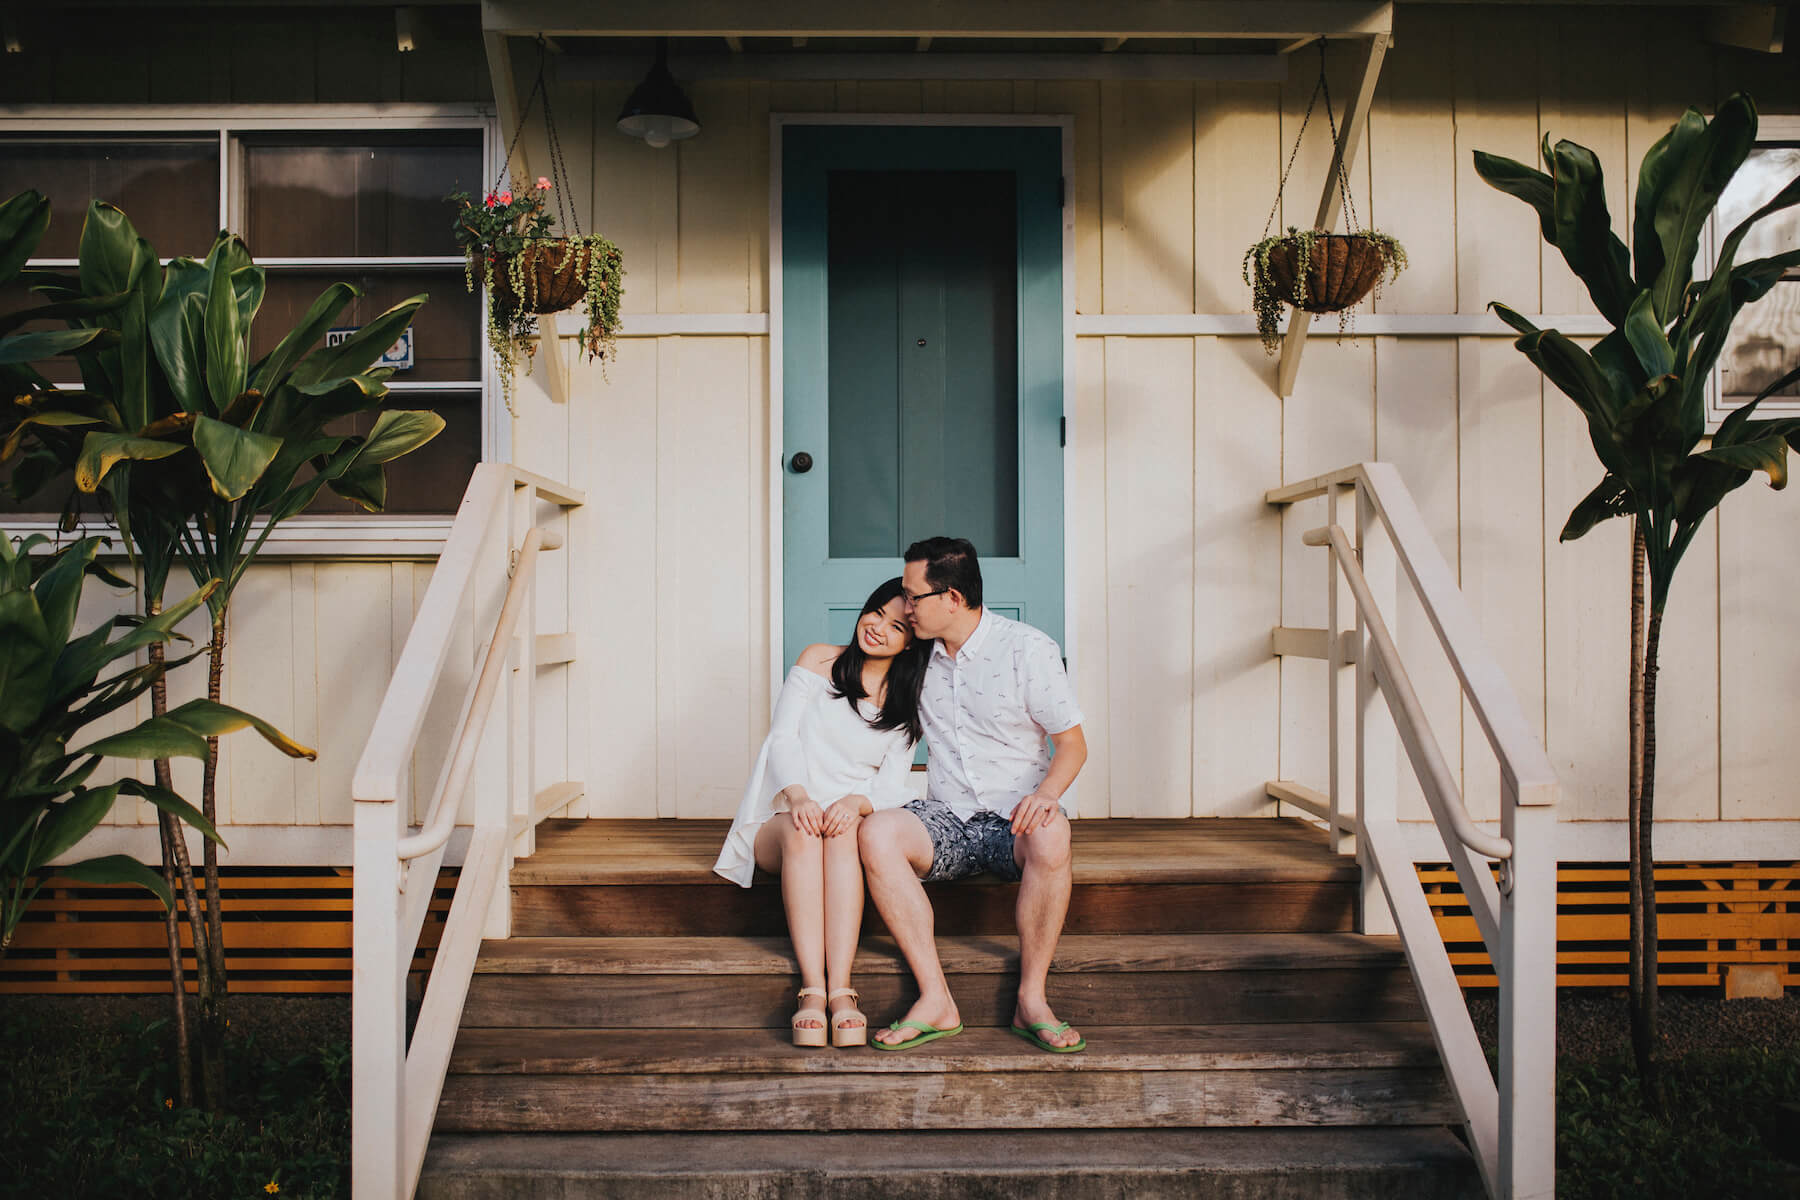 Couple in Hawaii on their honeymoon sitting on a porch